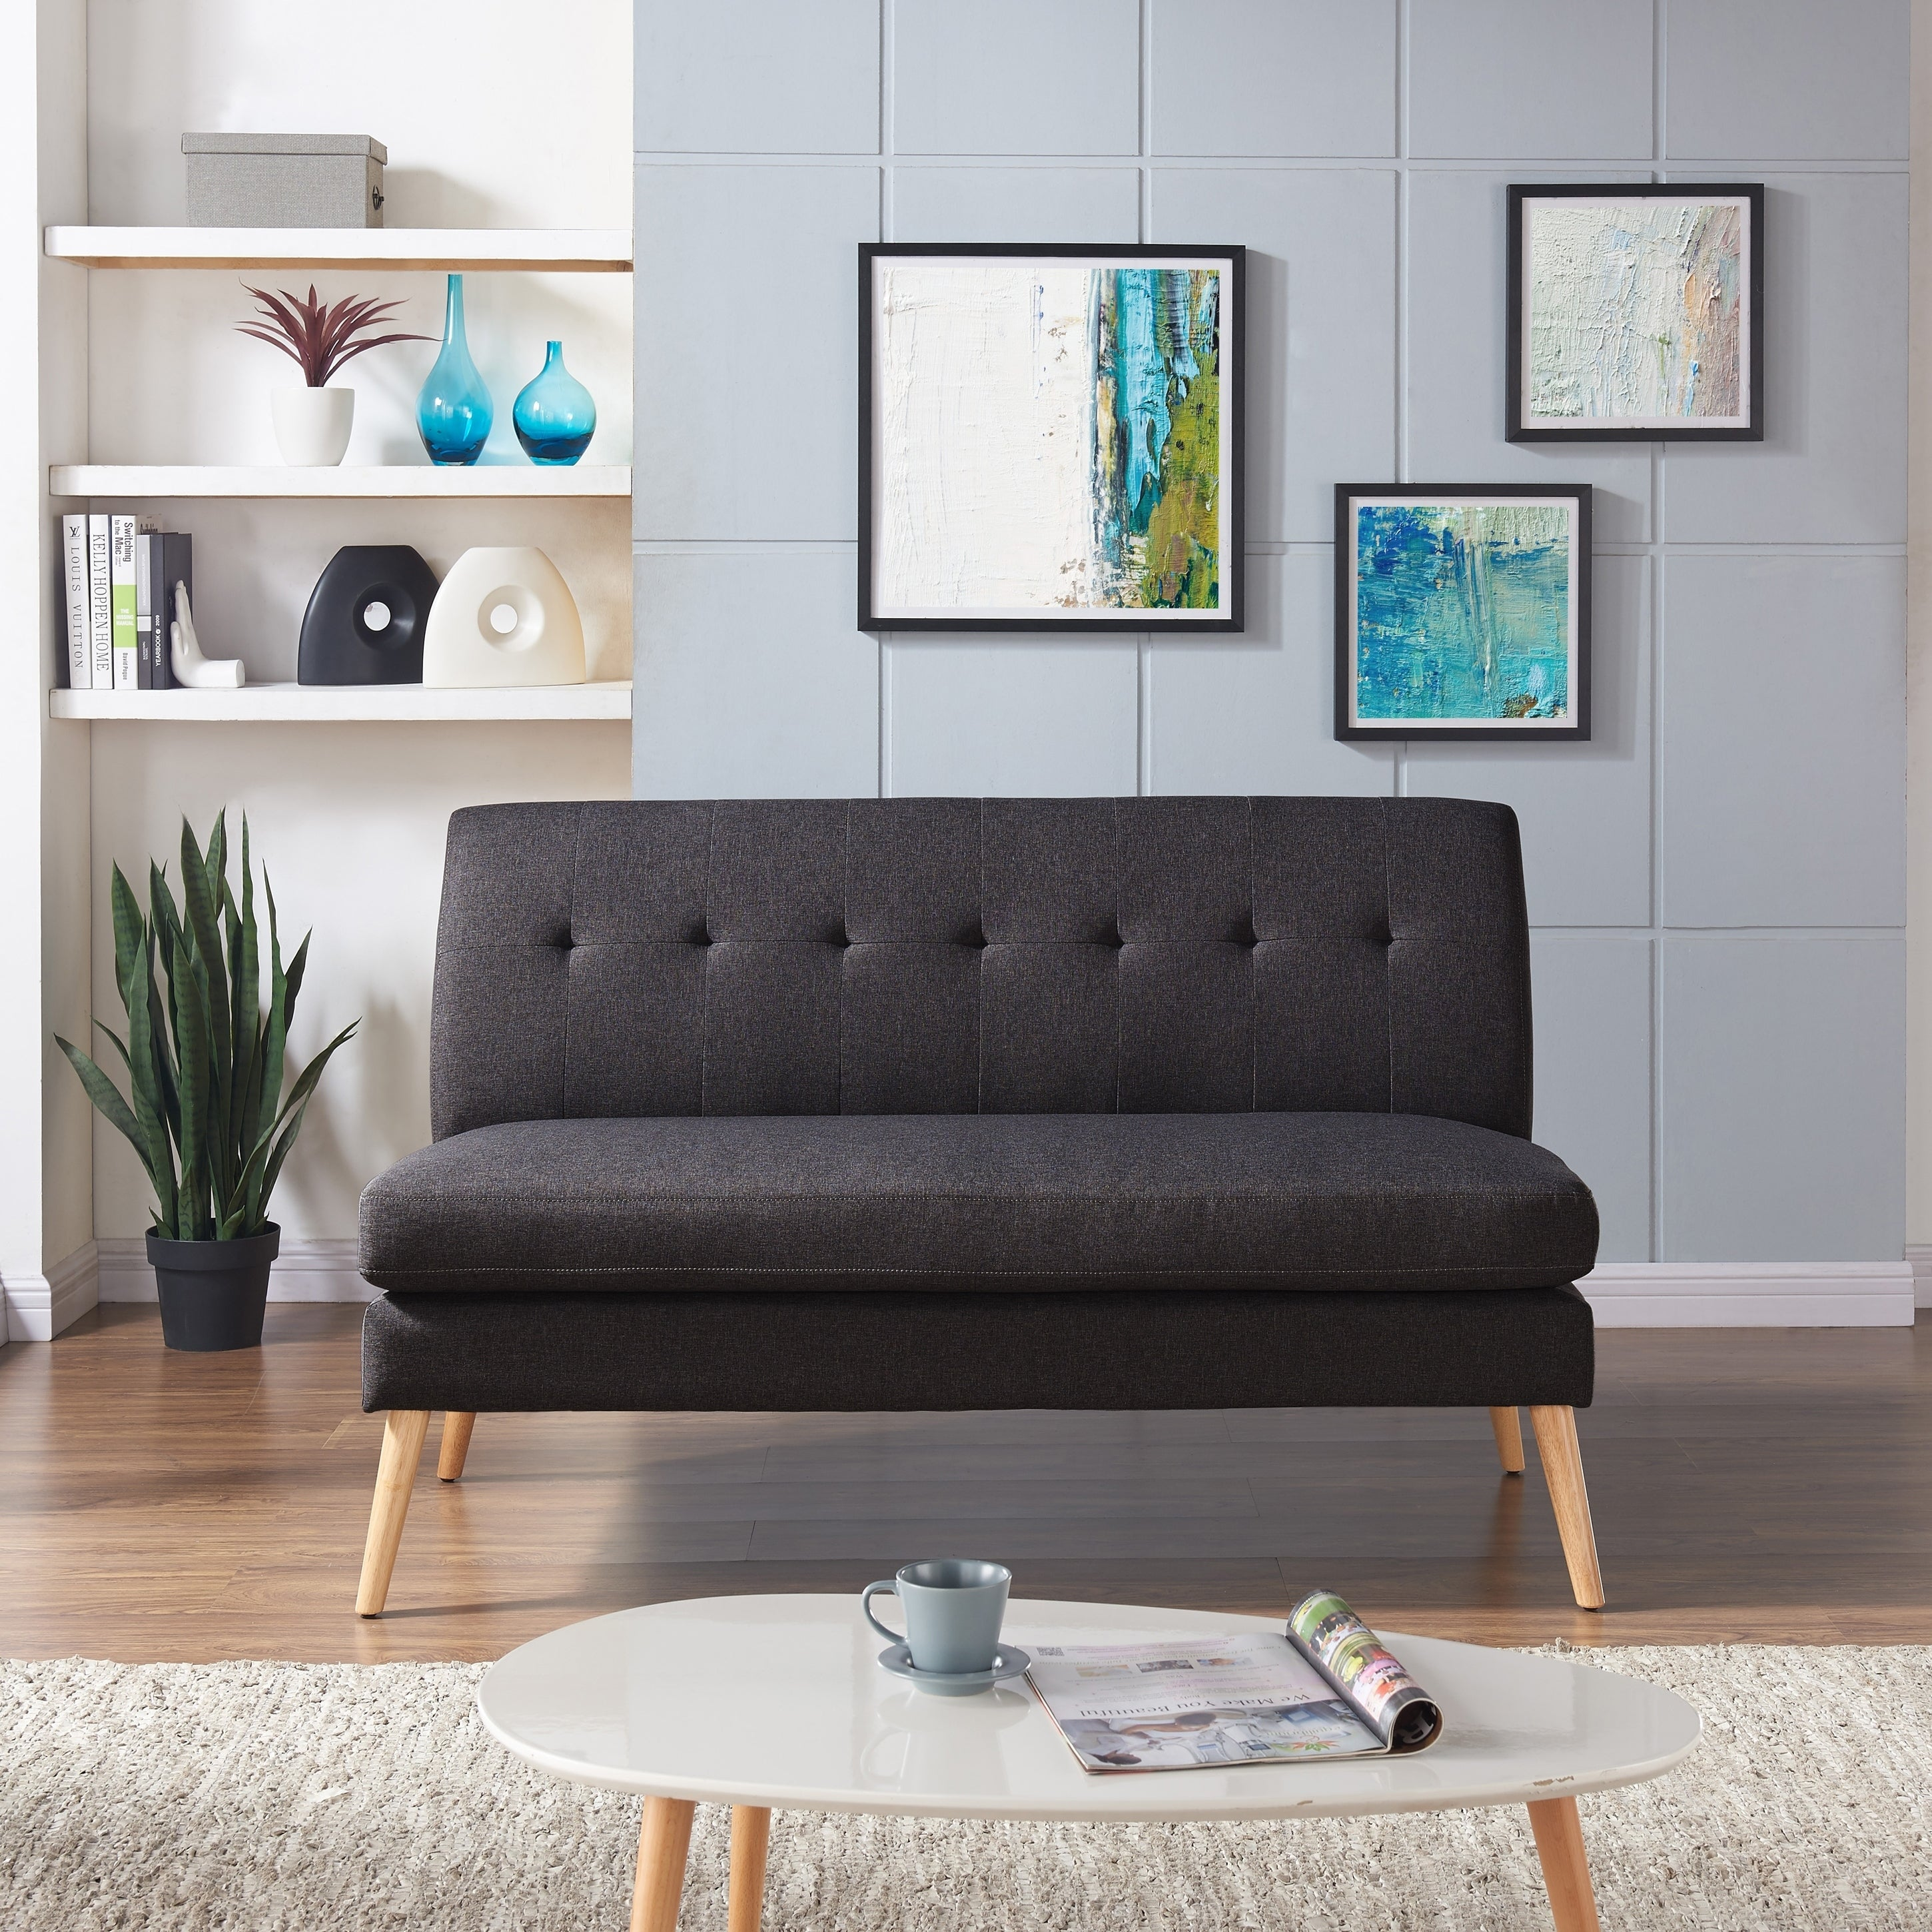 Details about handy living kingston mid century modern charcoal linen armless loveseat